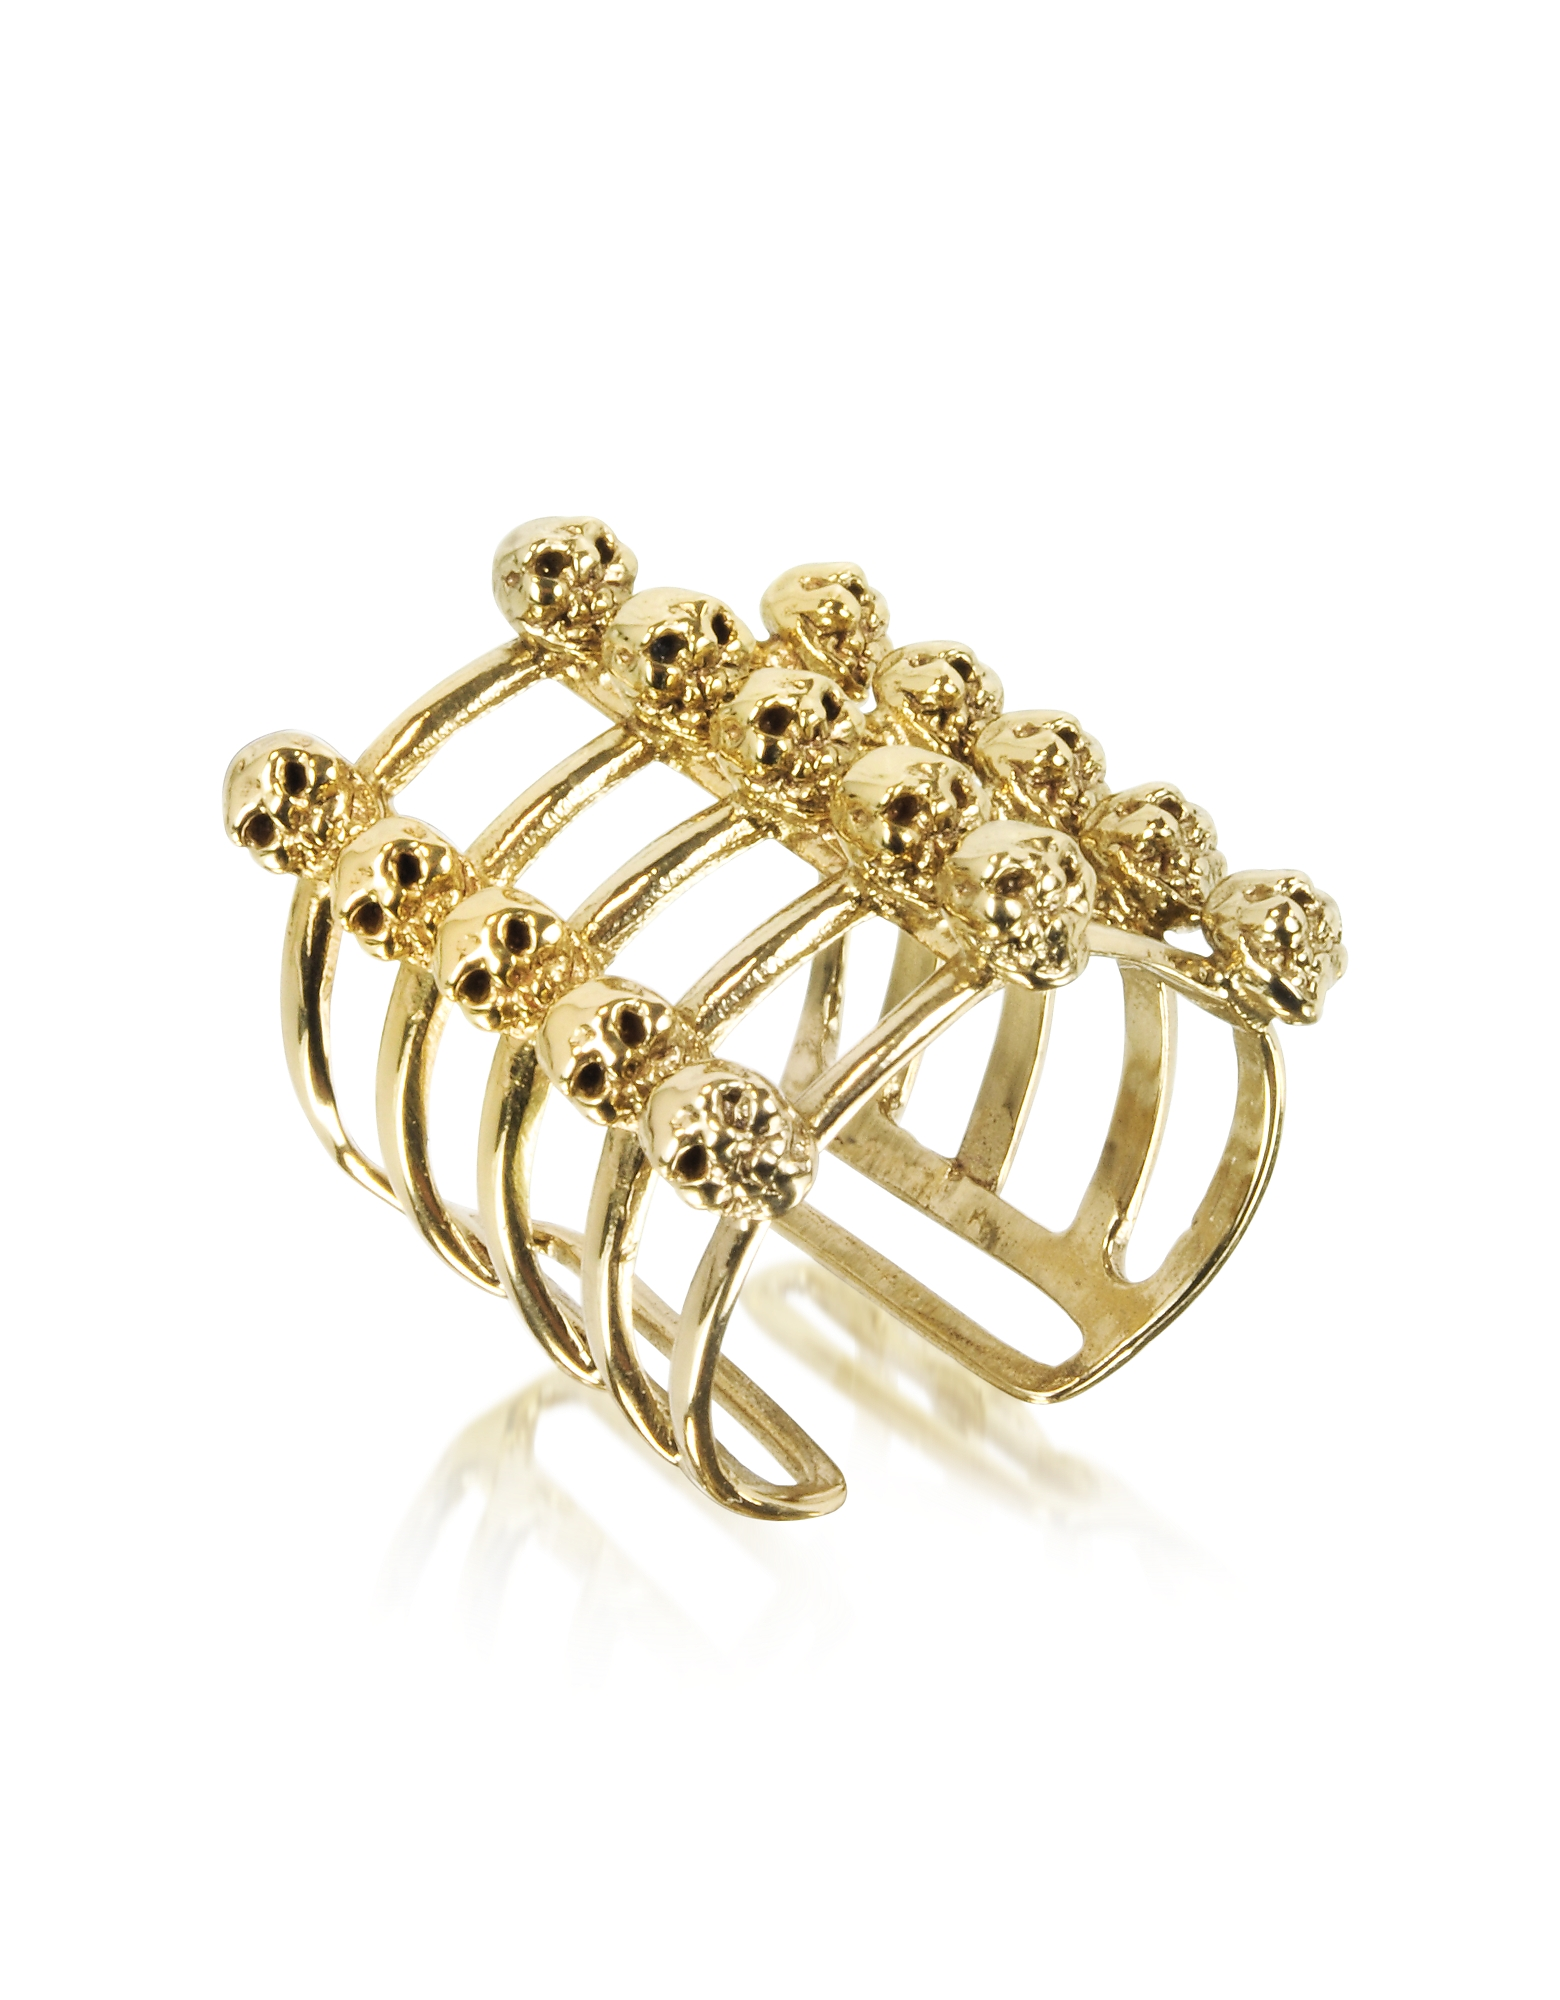 Bernard Delettrez Rings, Cage and Skulls Bronze Ring